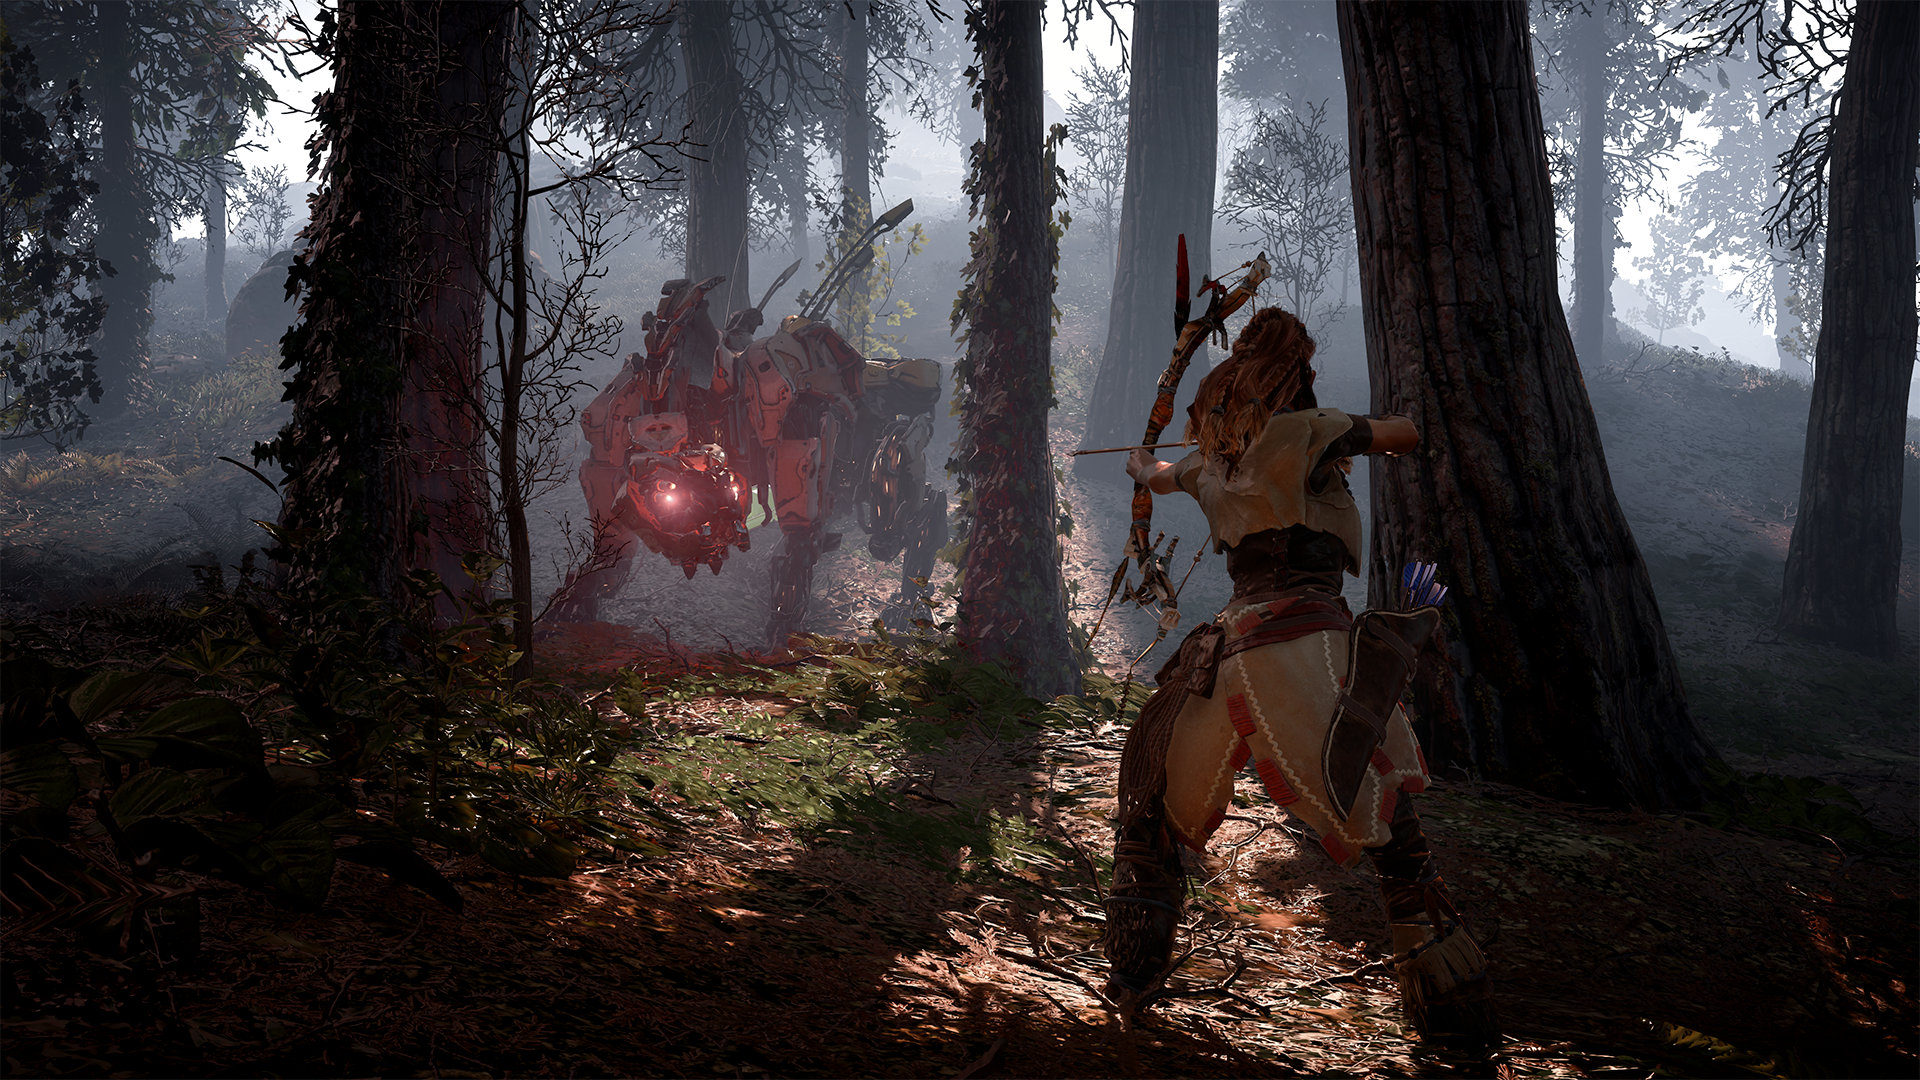 Horizon Zero Dawn Karte Ruinen.Spieletest Horizon Zero Dawn Mmobox At